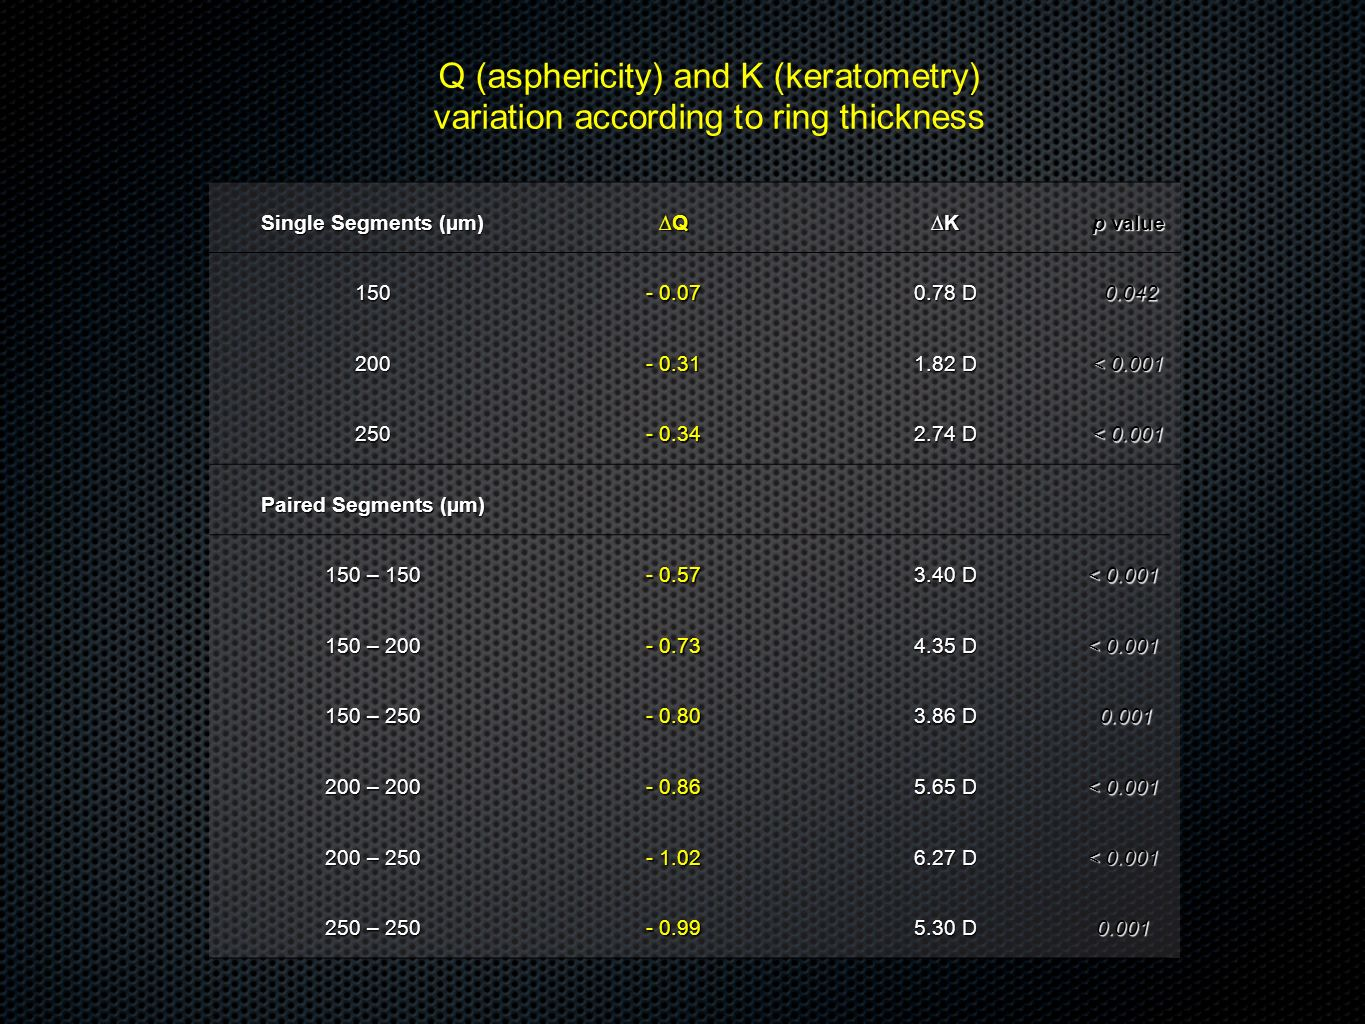 Q (asphericity) and K (keratometry)